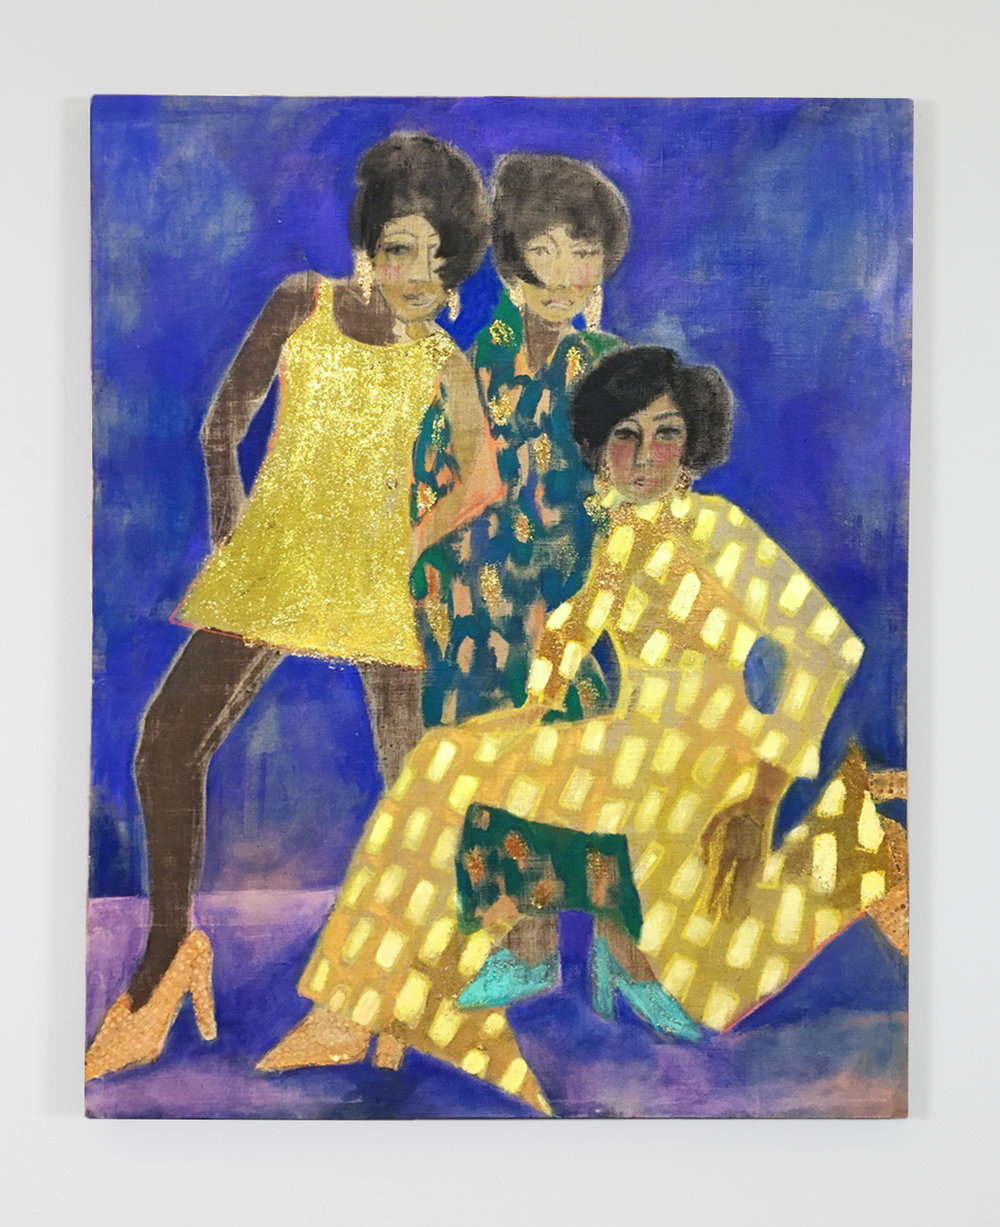 Three Graces (Diana, Mary, & Florence) , dye, acrylic, and glitter on linen, 50 in. x 42 in., 2017